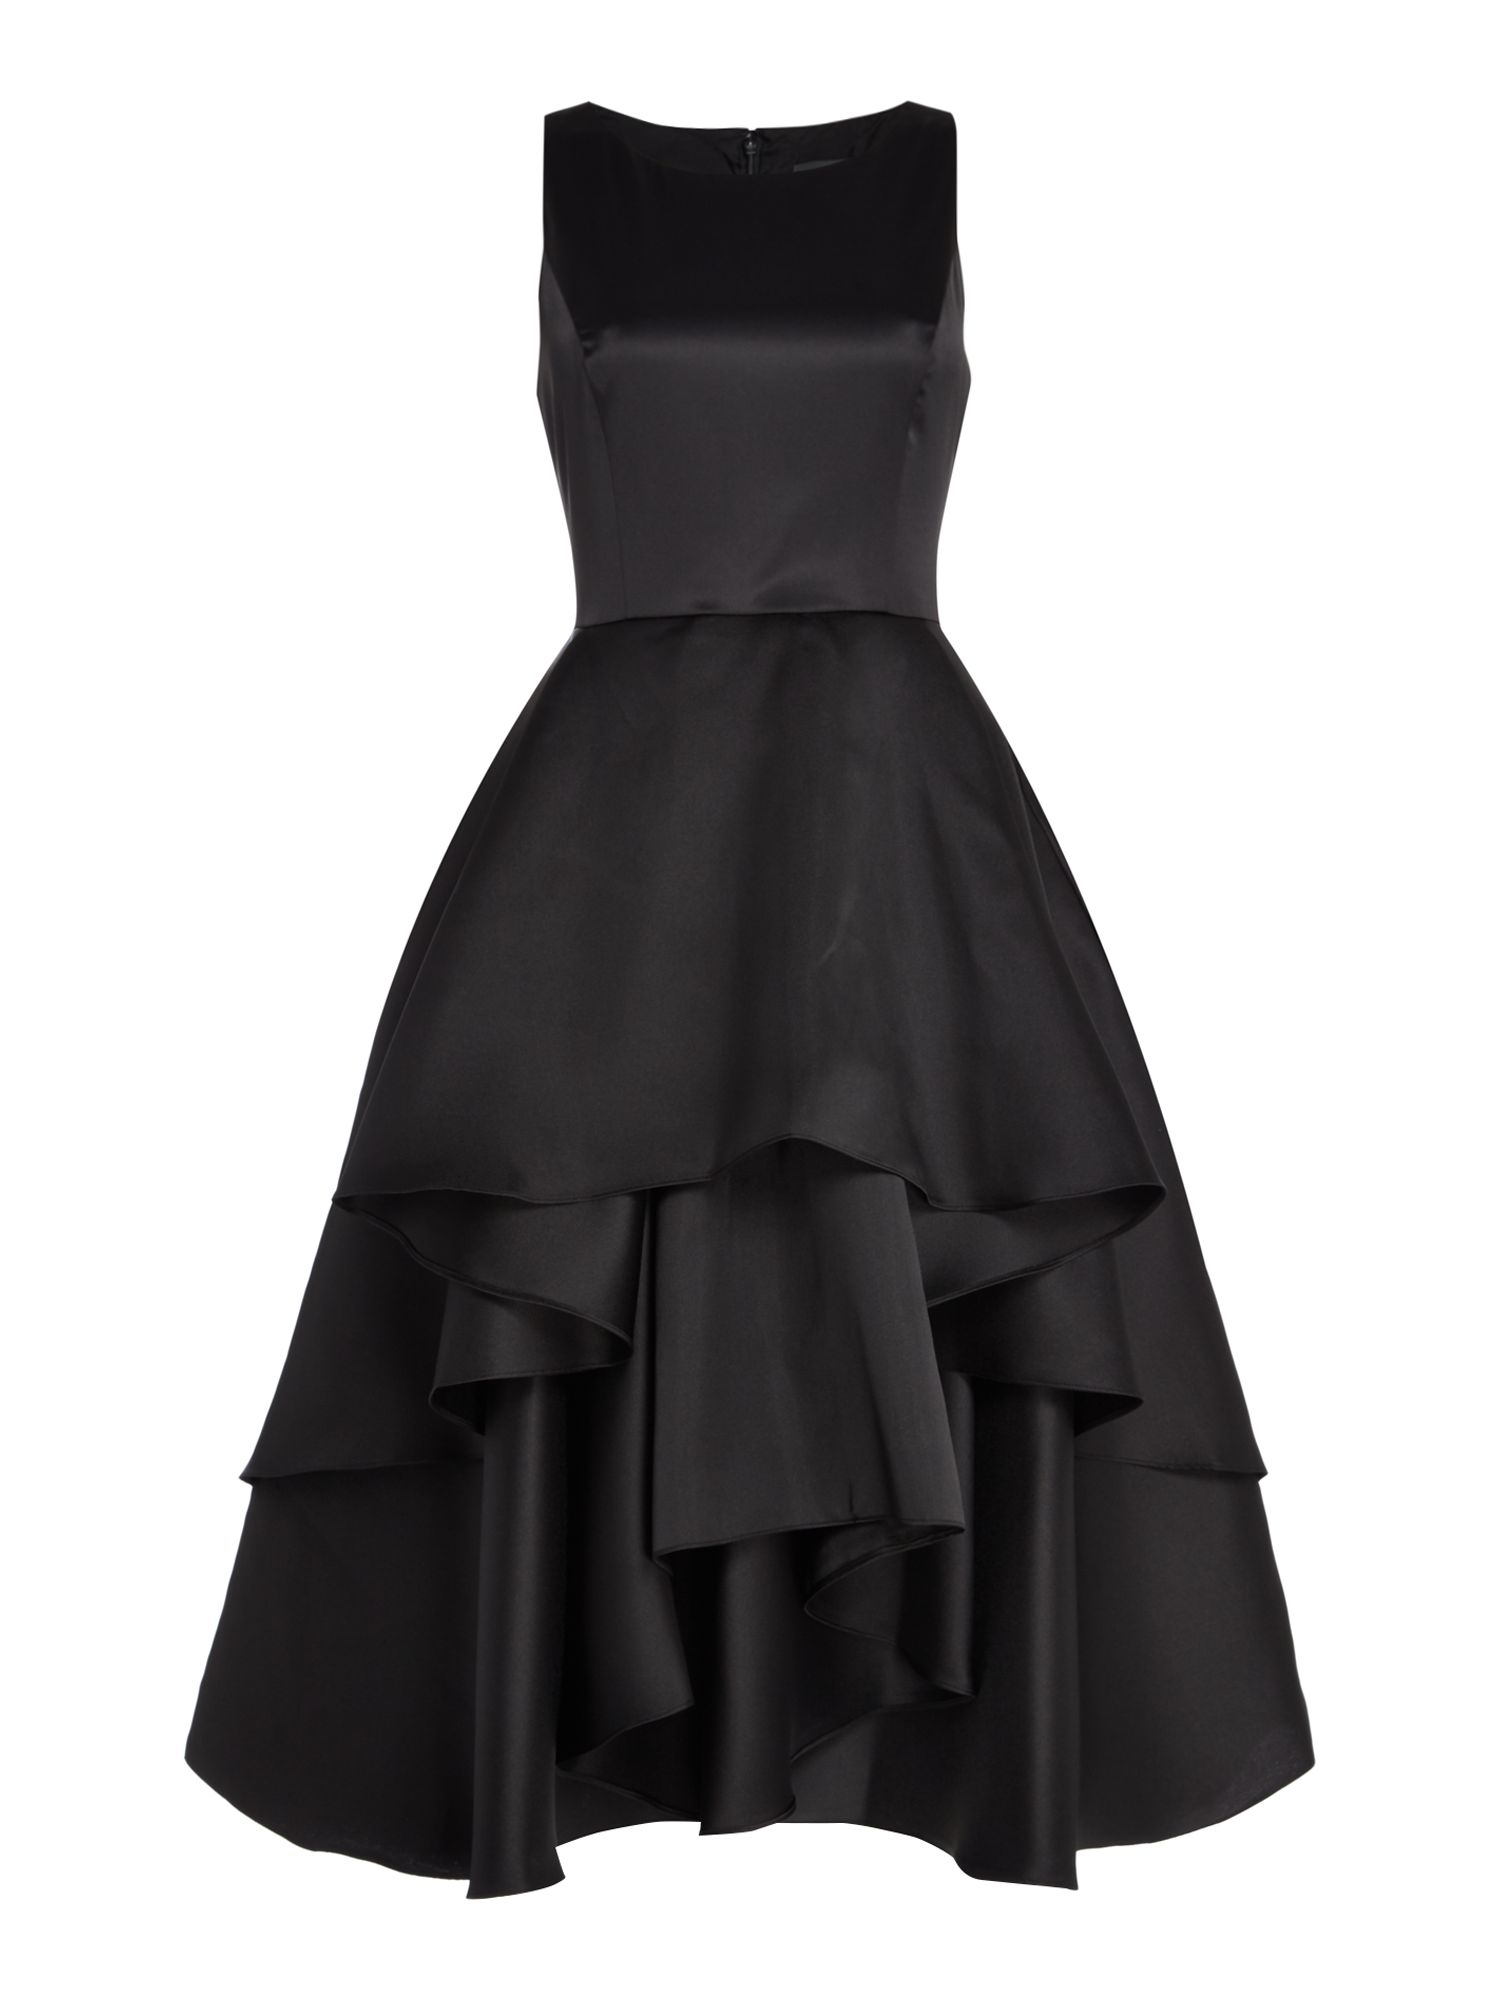 Adrianna Papell Emerald satin dress with frill top, Black